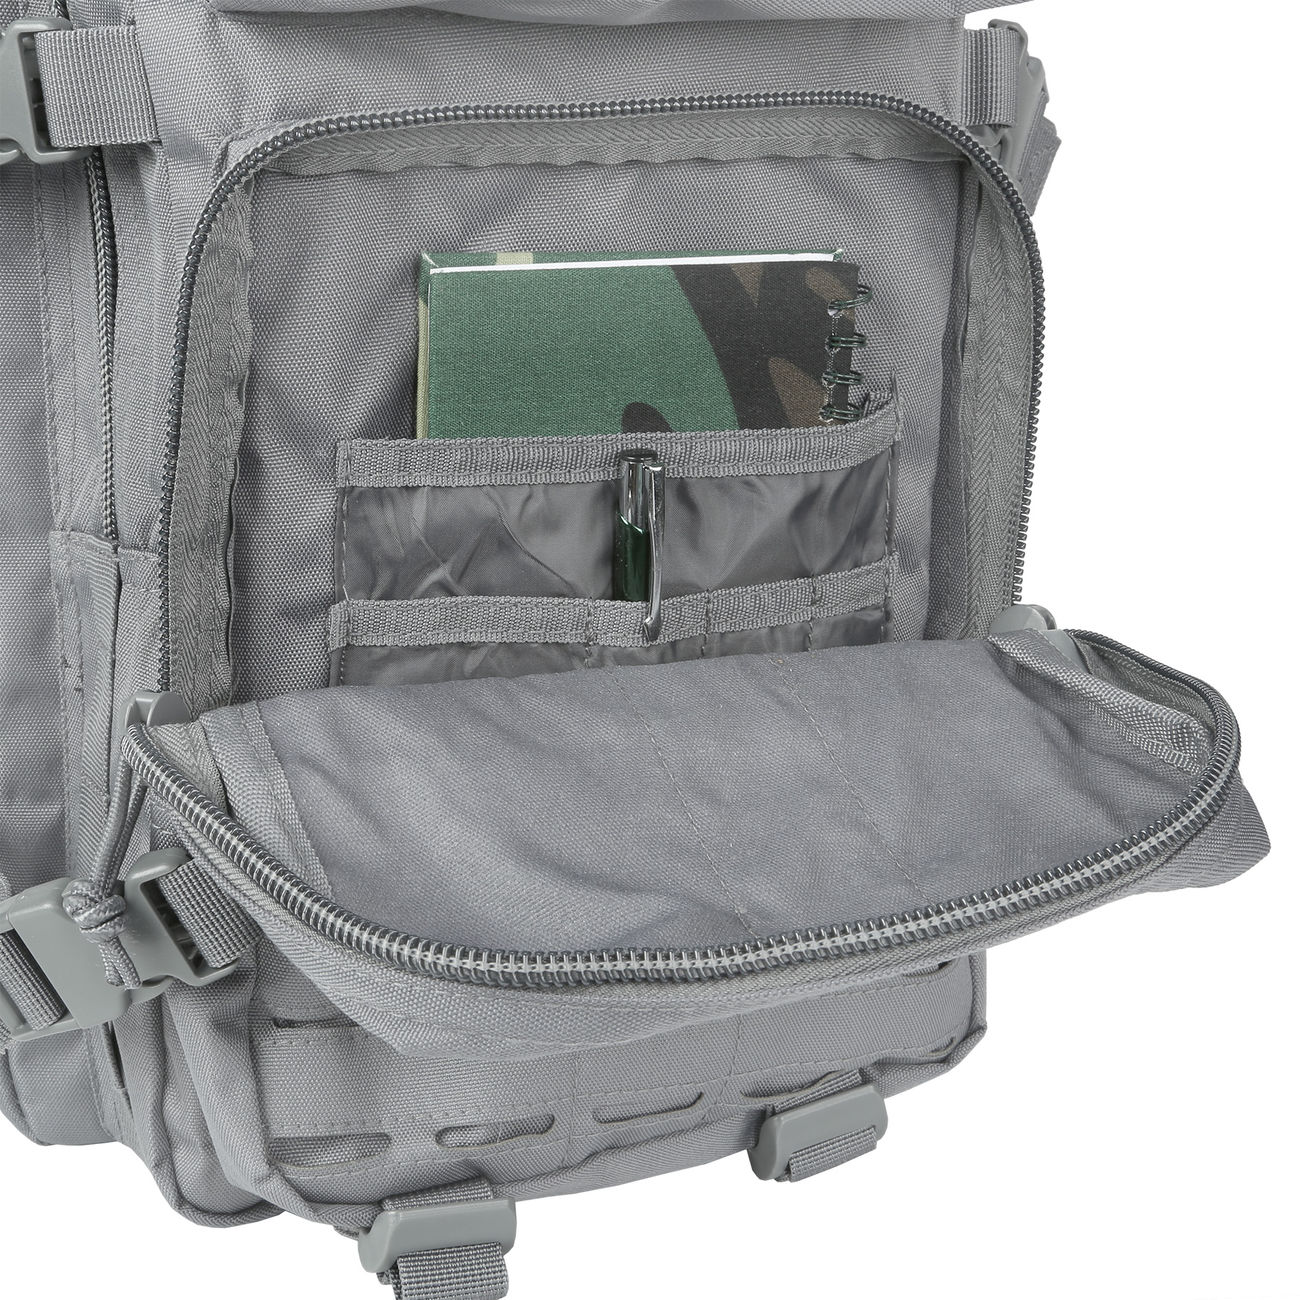 Mil-Tec Rucksack US Assault Pack Laser Cut large 36L Urban grey 10